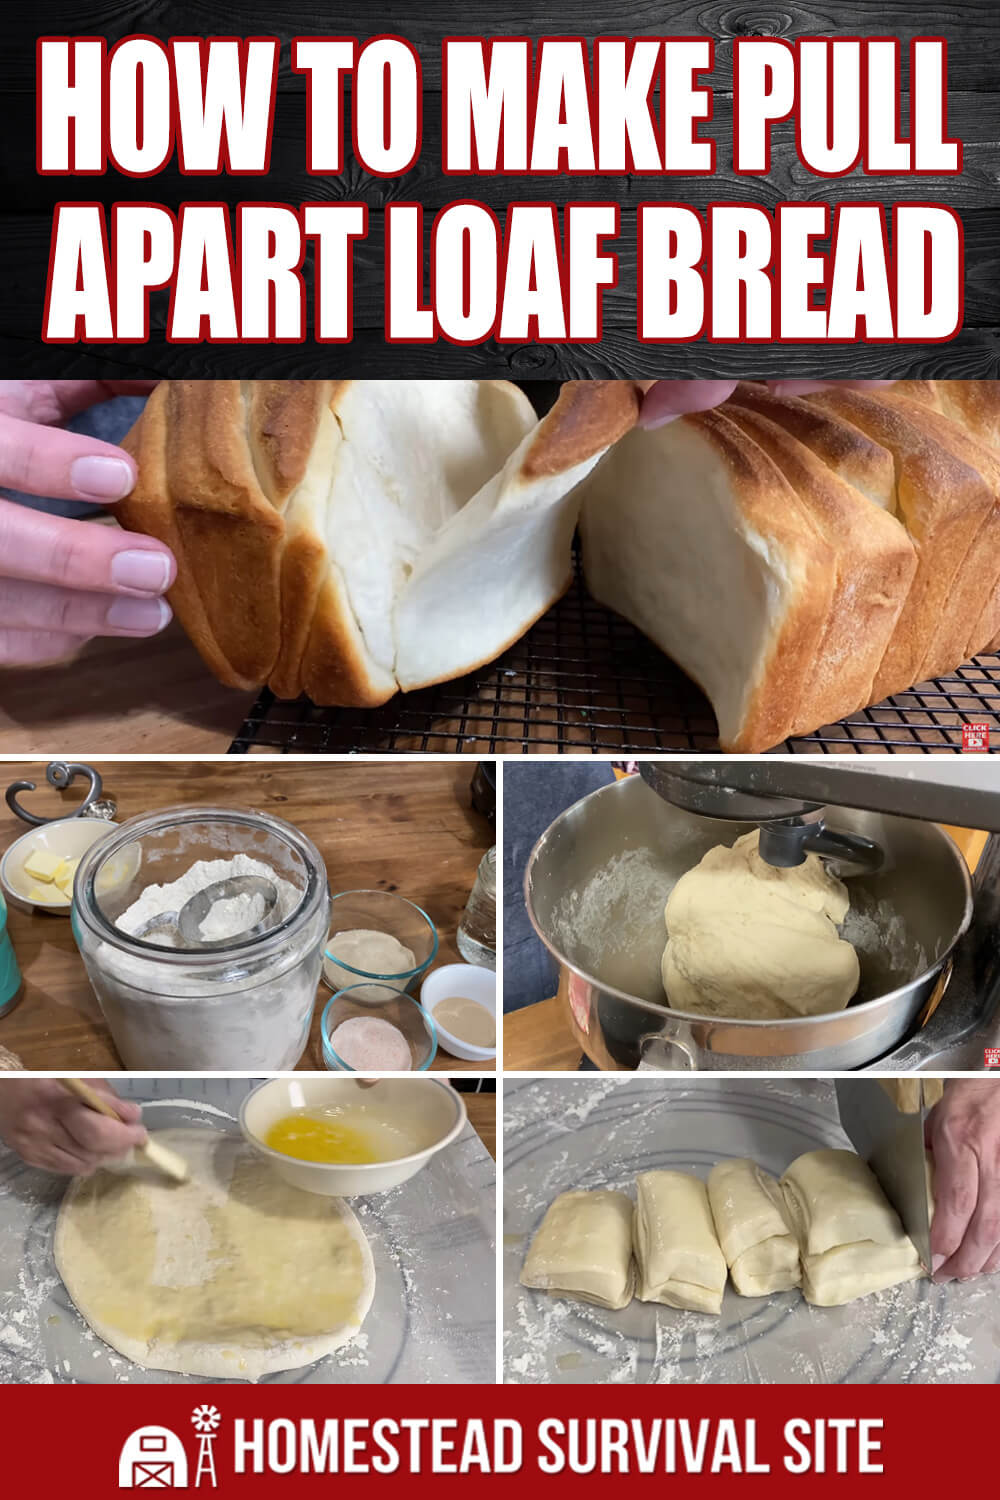 How to Make Pull-Apart Loaf Bread